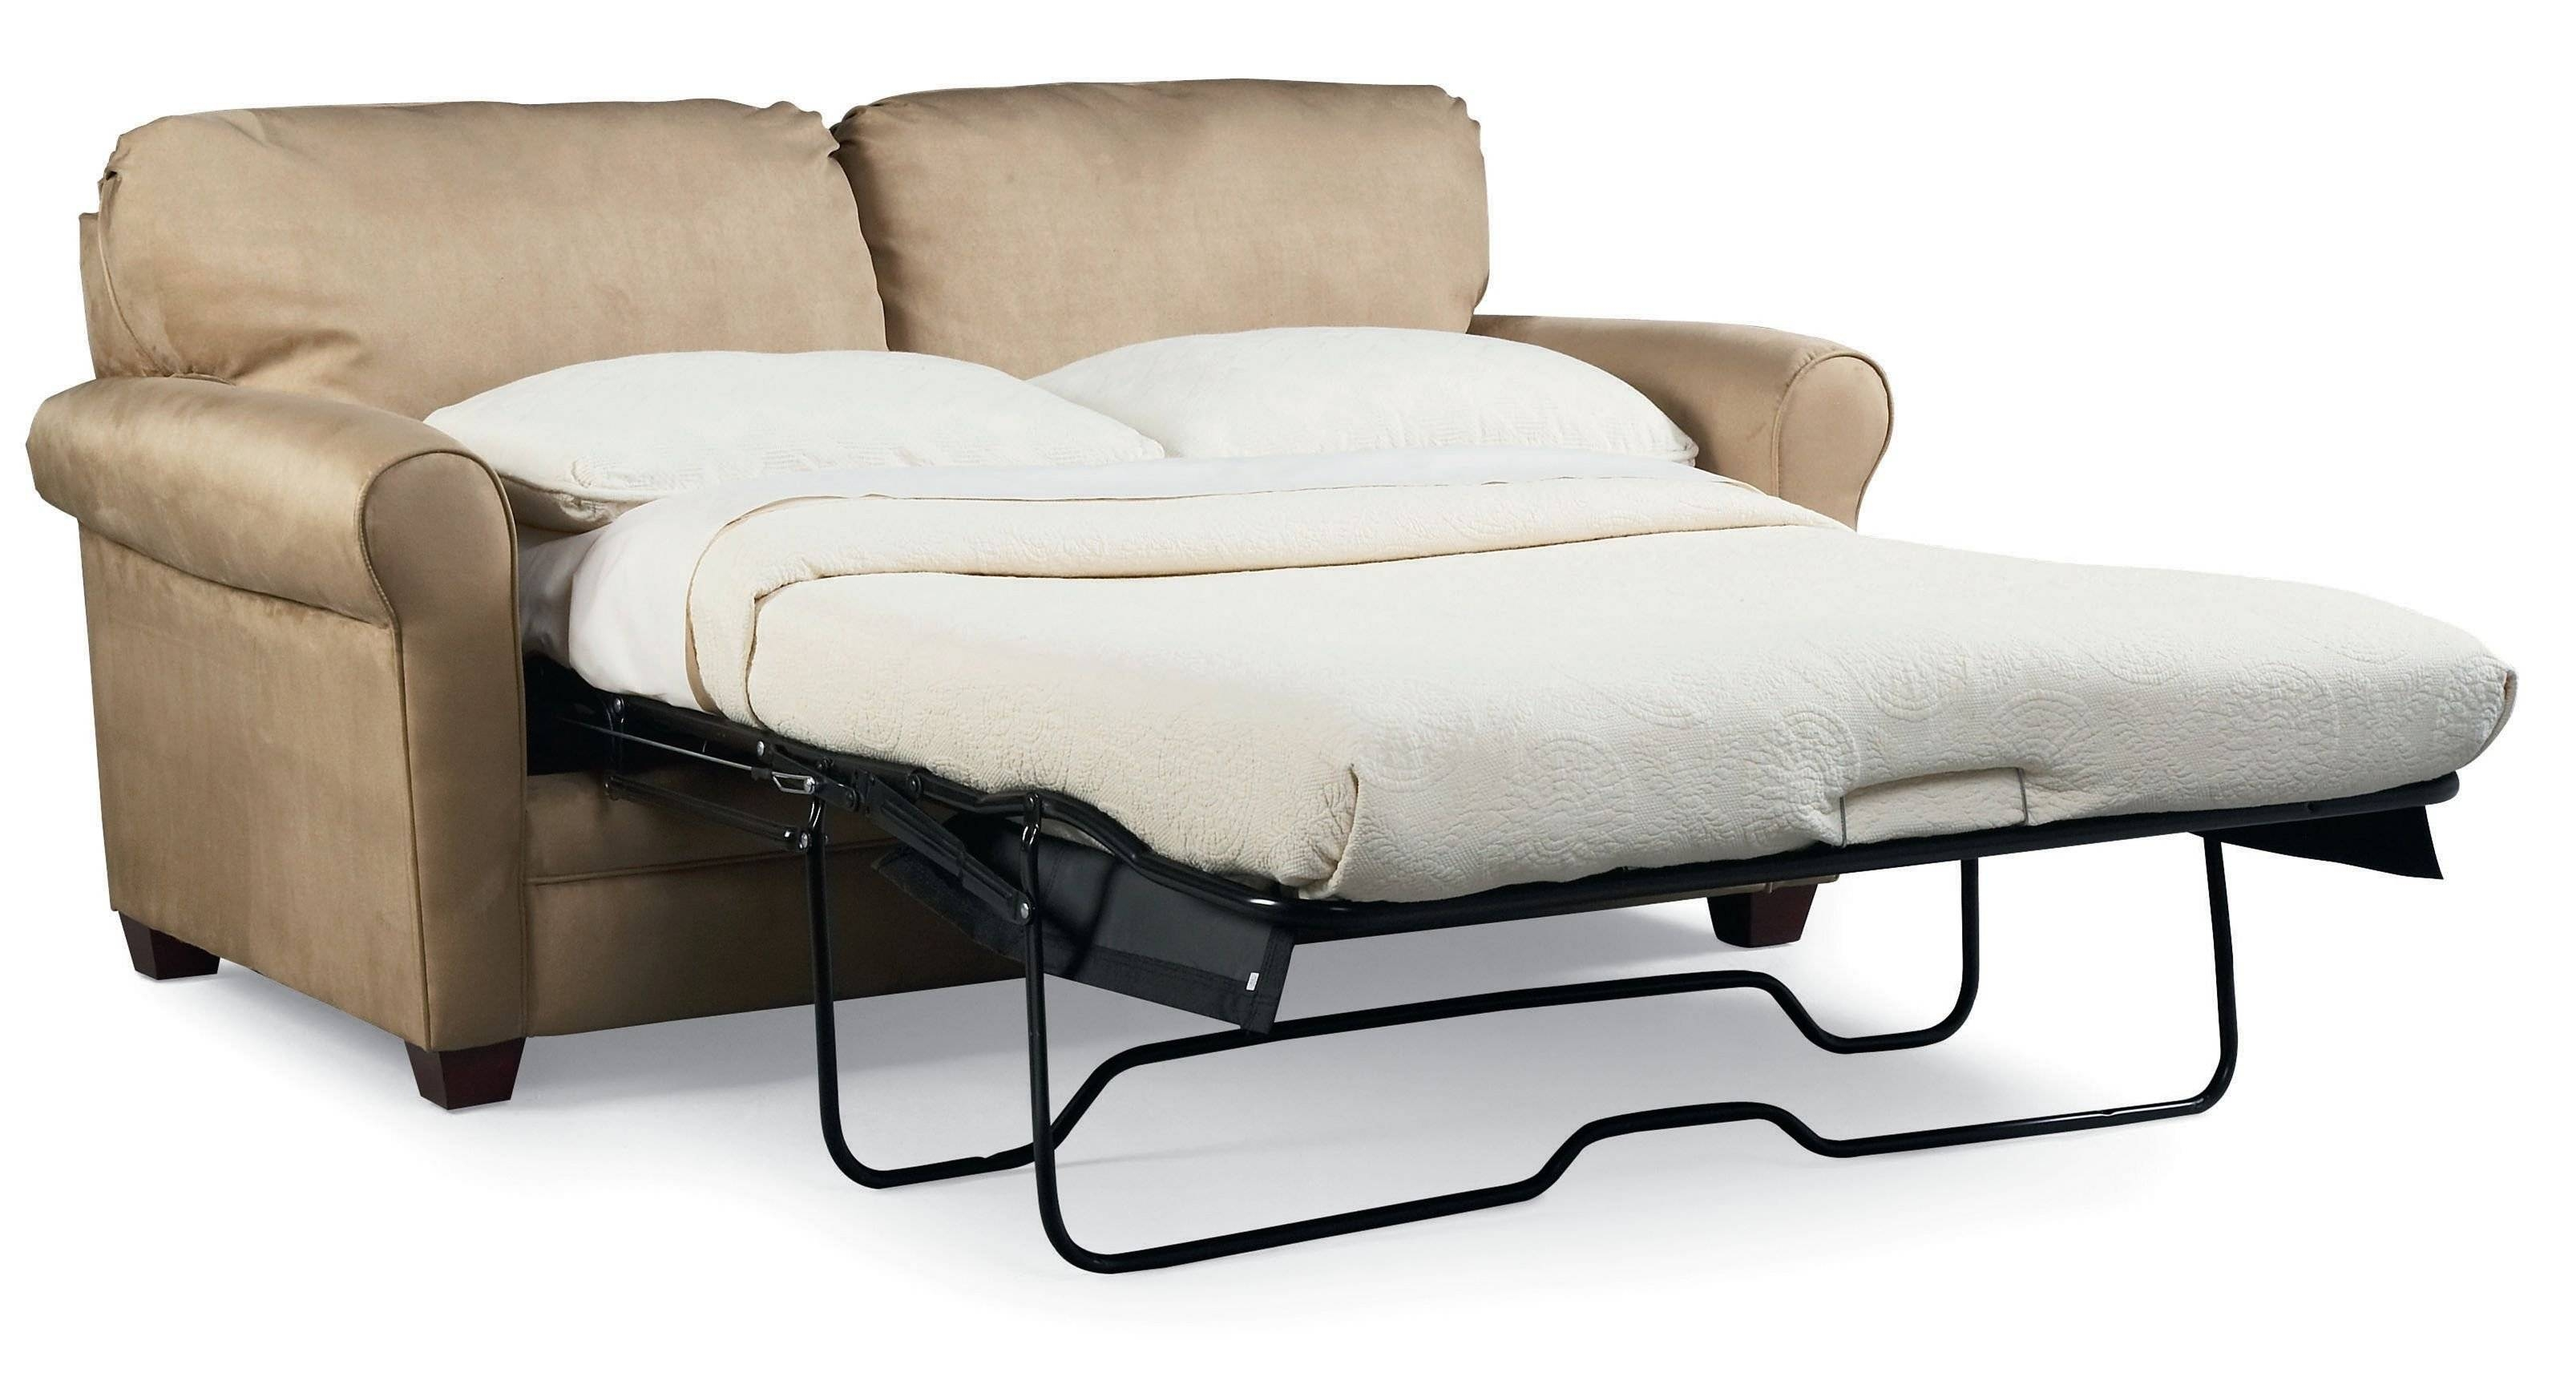 Sleeper Sofa Bed Queen Size | Tehranmix Decoration for Sofa Beds Queen (Image 28 of 30)